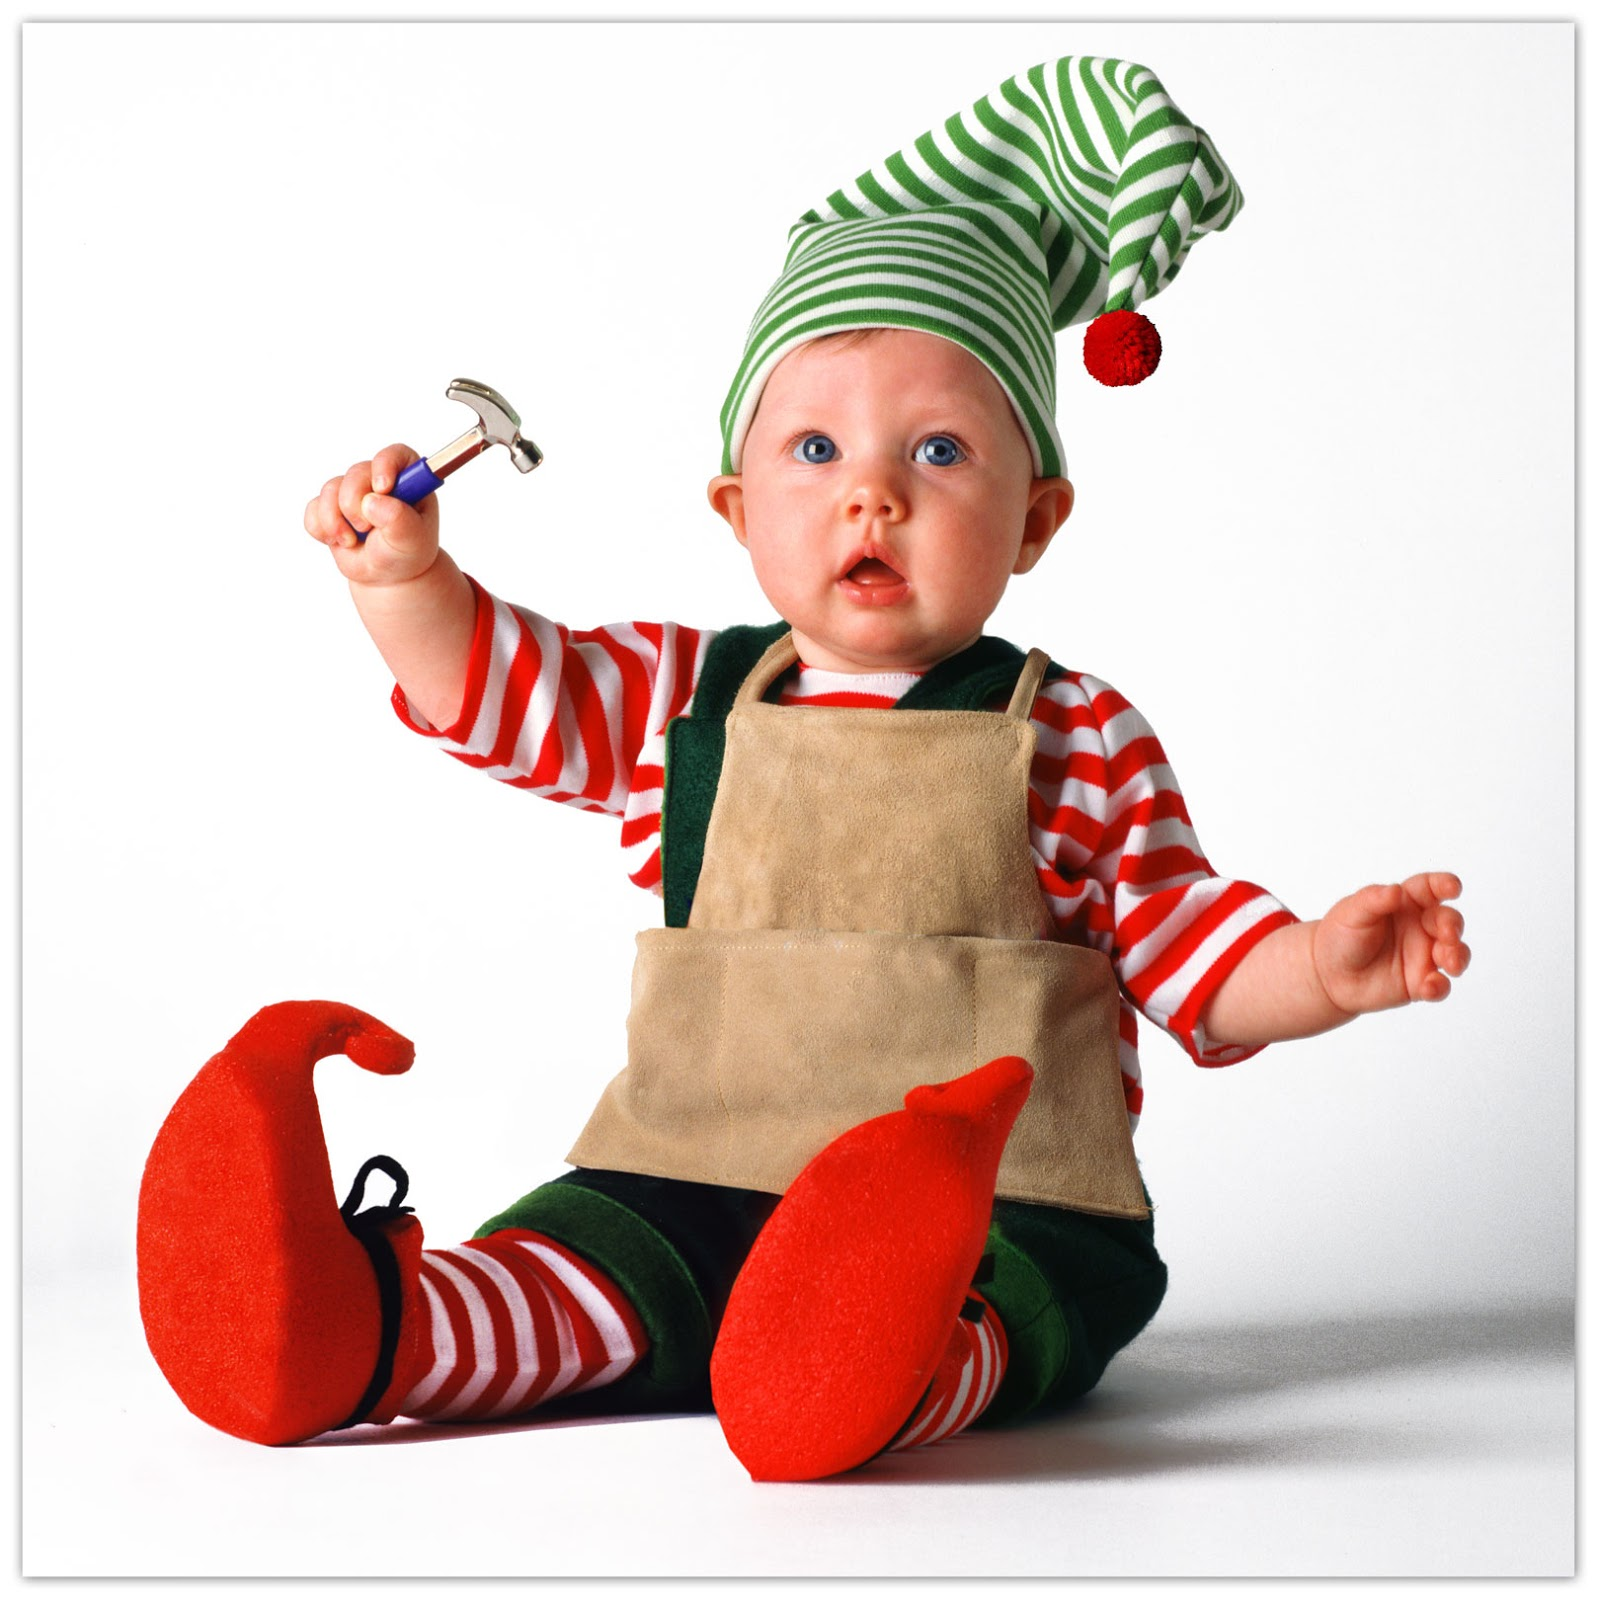 Baby Elf Costume Infant/Toddler Christmas Santa's Lil' Helper Fancy Dress Outfit. Brand New. Baby Christmas Elf Santa's Lil' Helper Cute Costume Fancy Dress Outfit Infant. Brand New · InCharacter. Baby First Christmas Xmas Santa Claus Elf Costume Outfit Dress Clothes+Hat+Shoes. Brand New · Unbranded. $ From China.